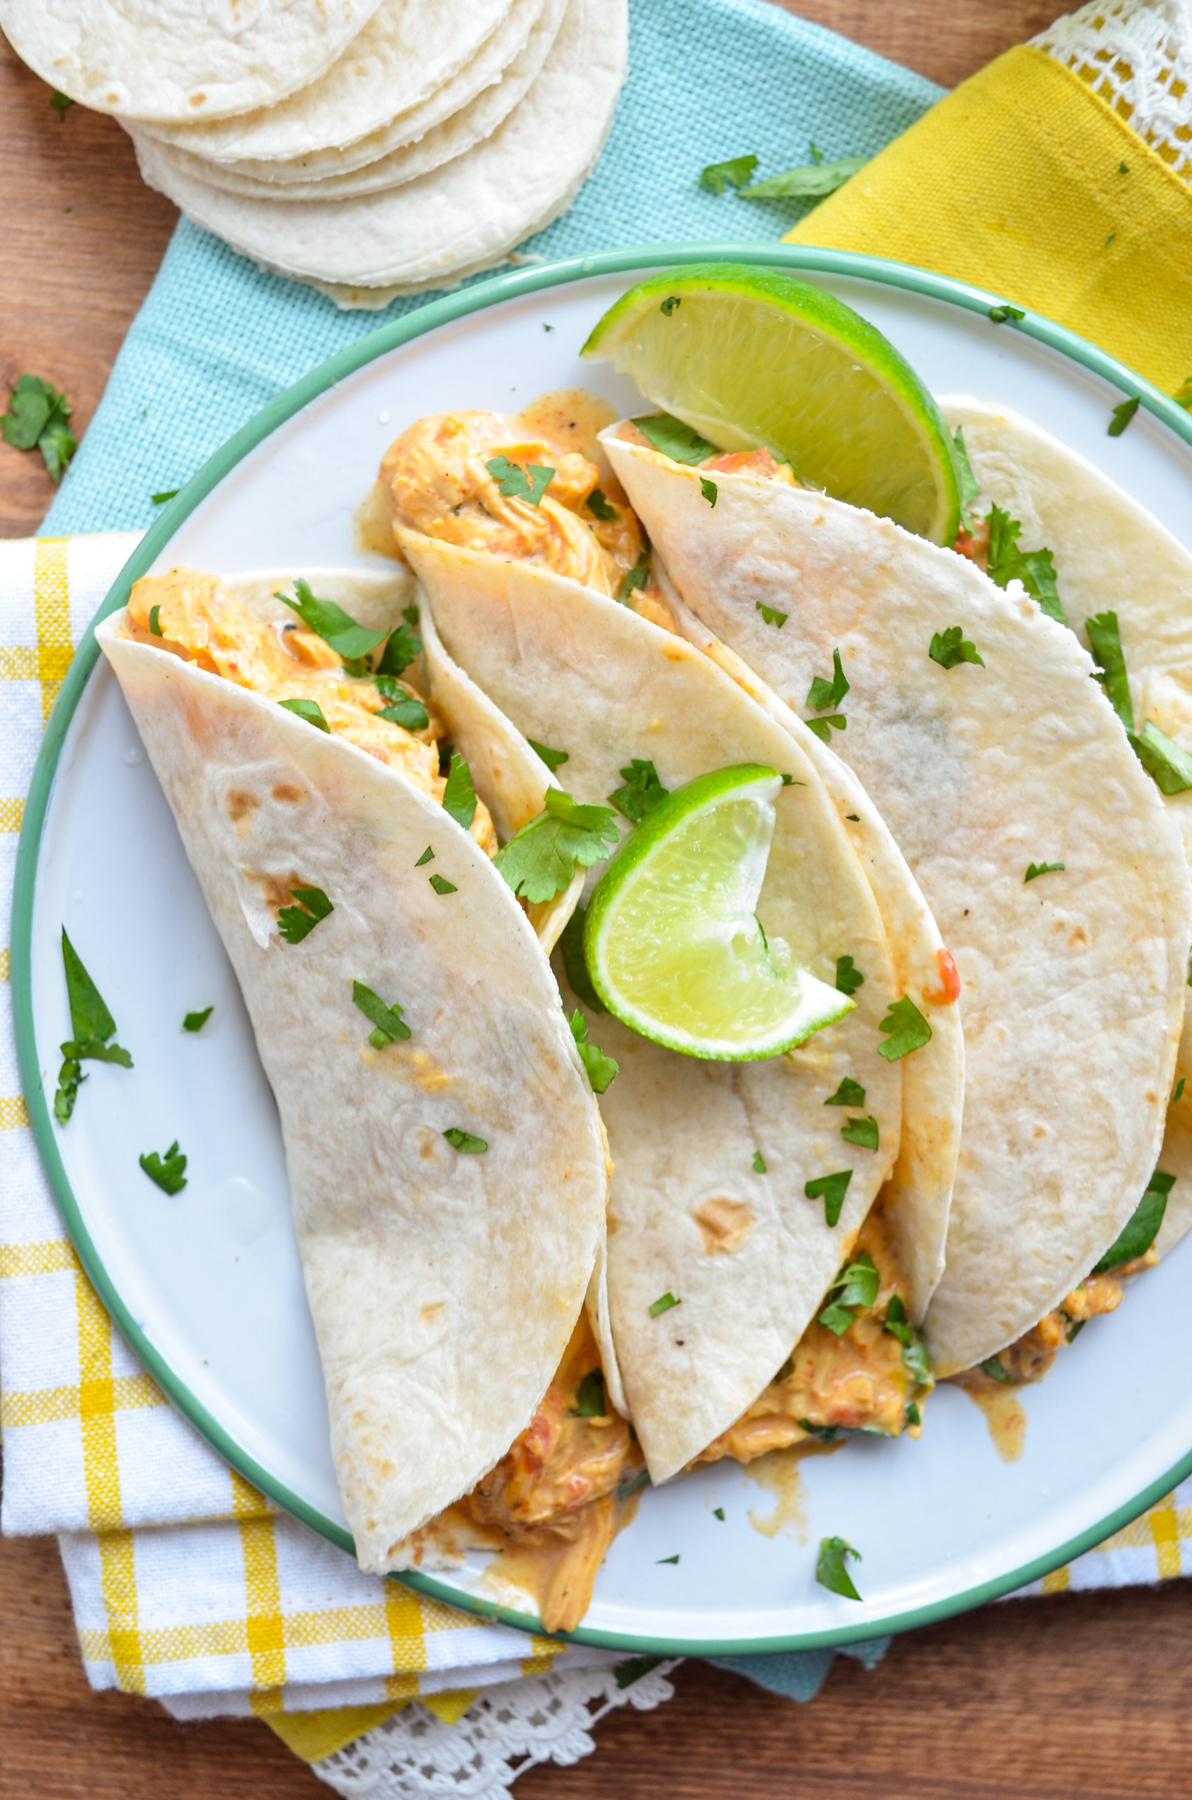 Three chicken queso tacos on a plate, resting on bright napkins.